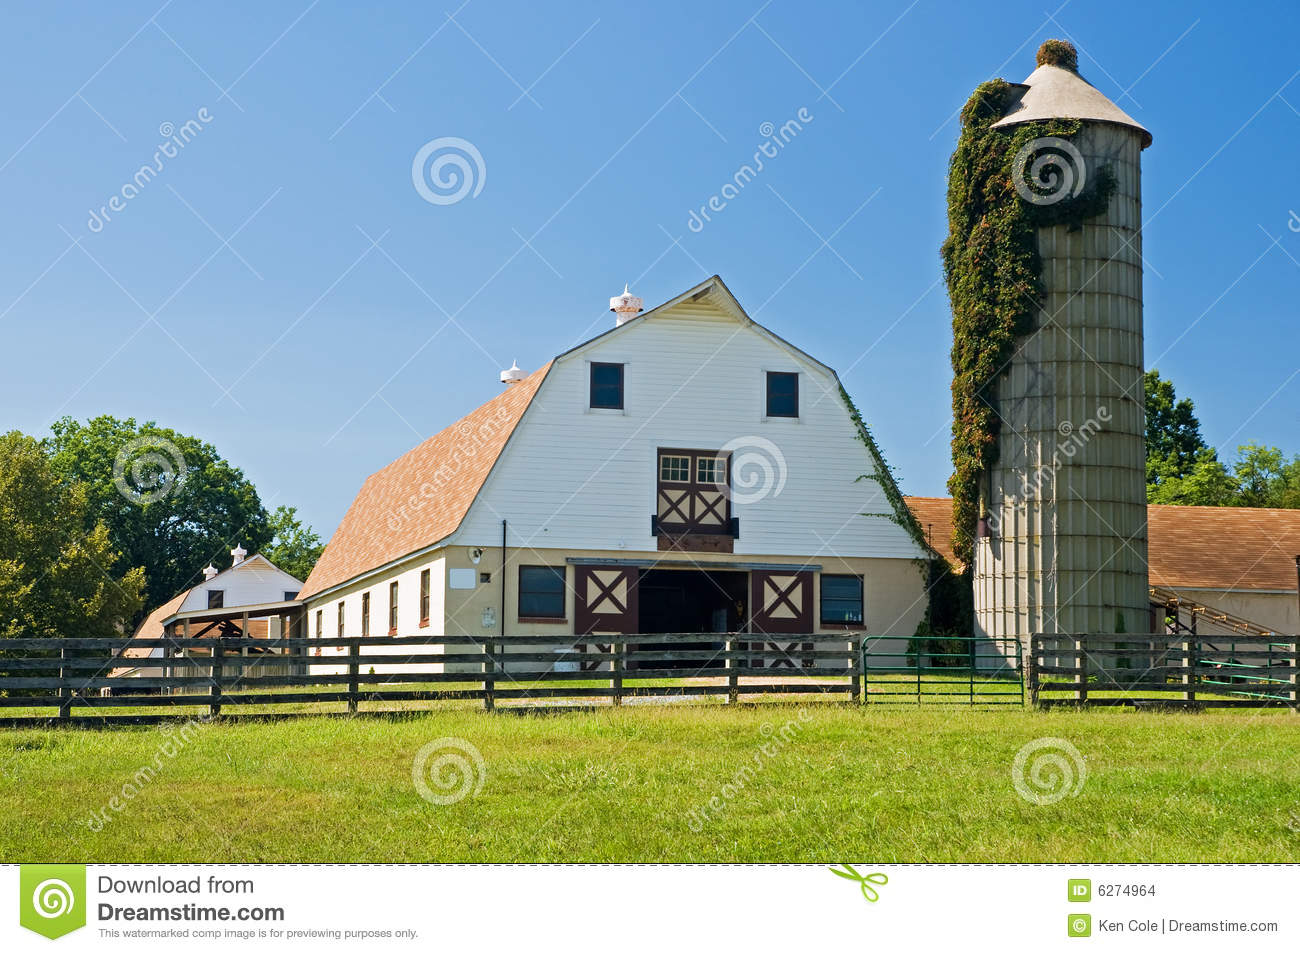 Barns and silo on dairy farm